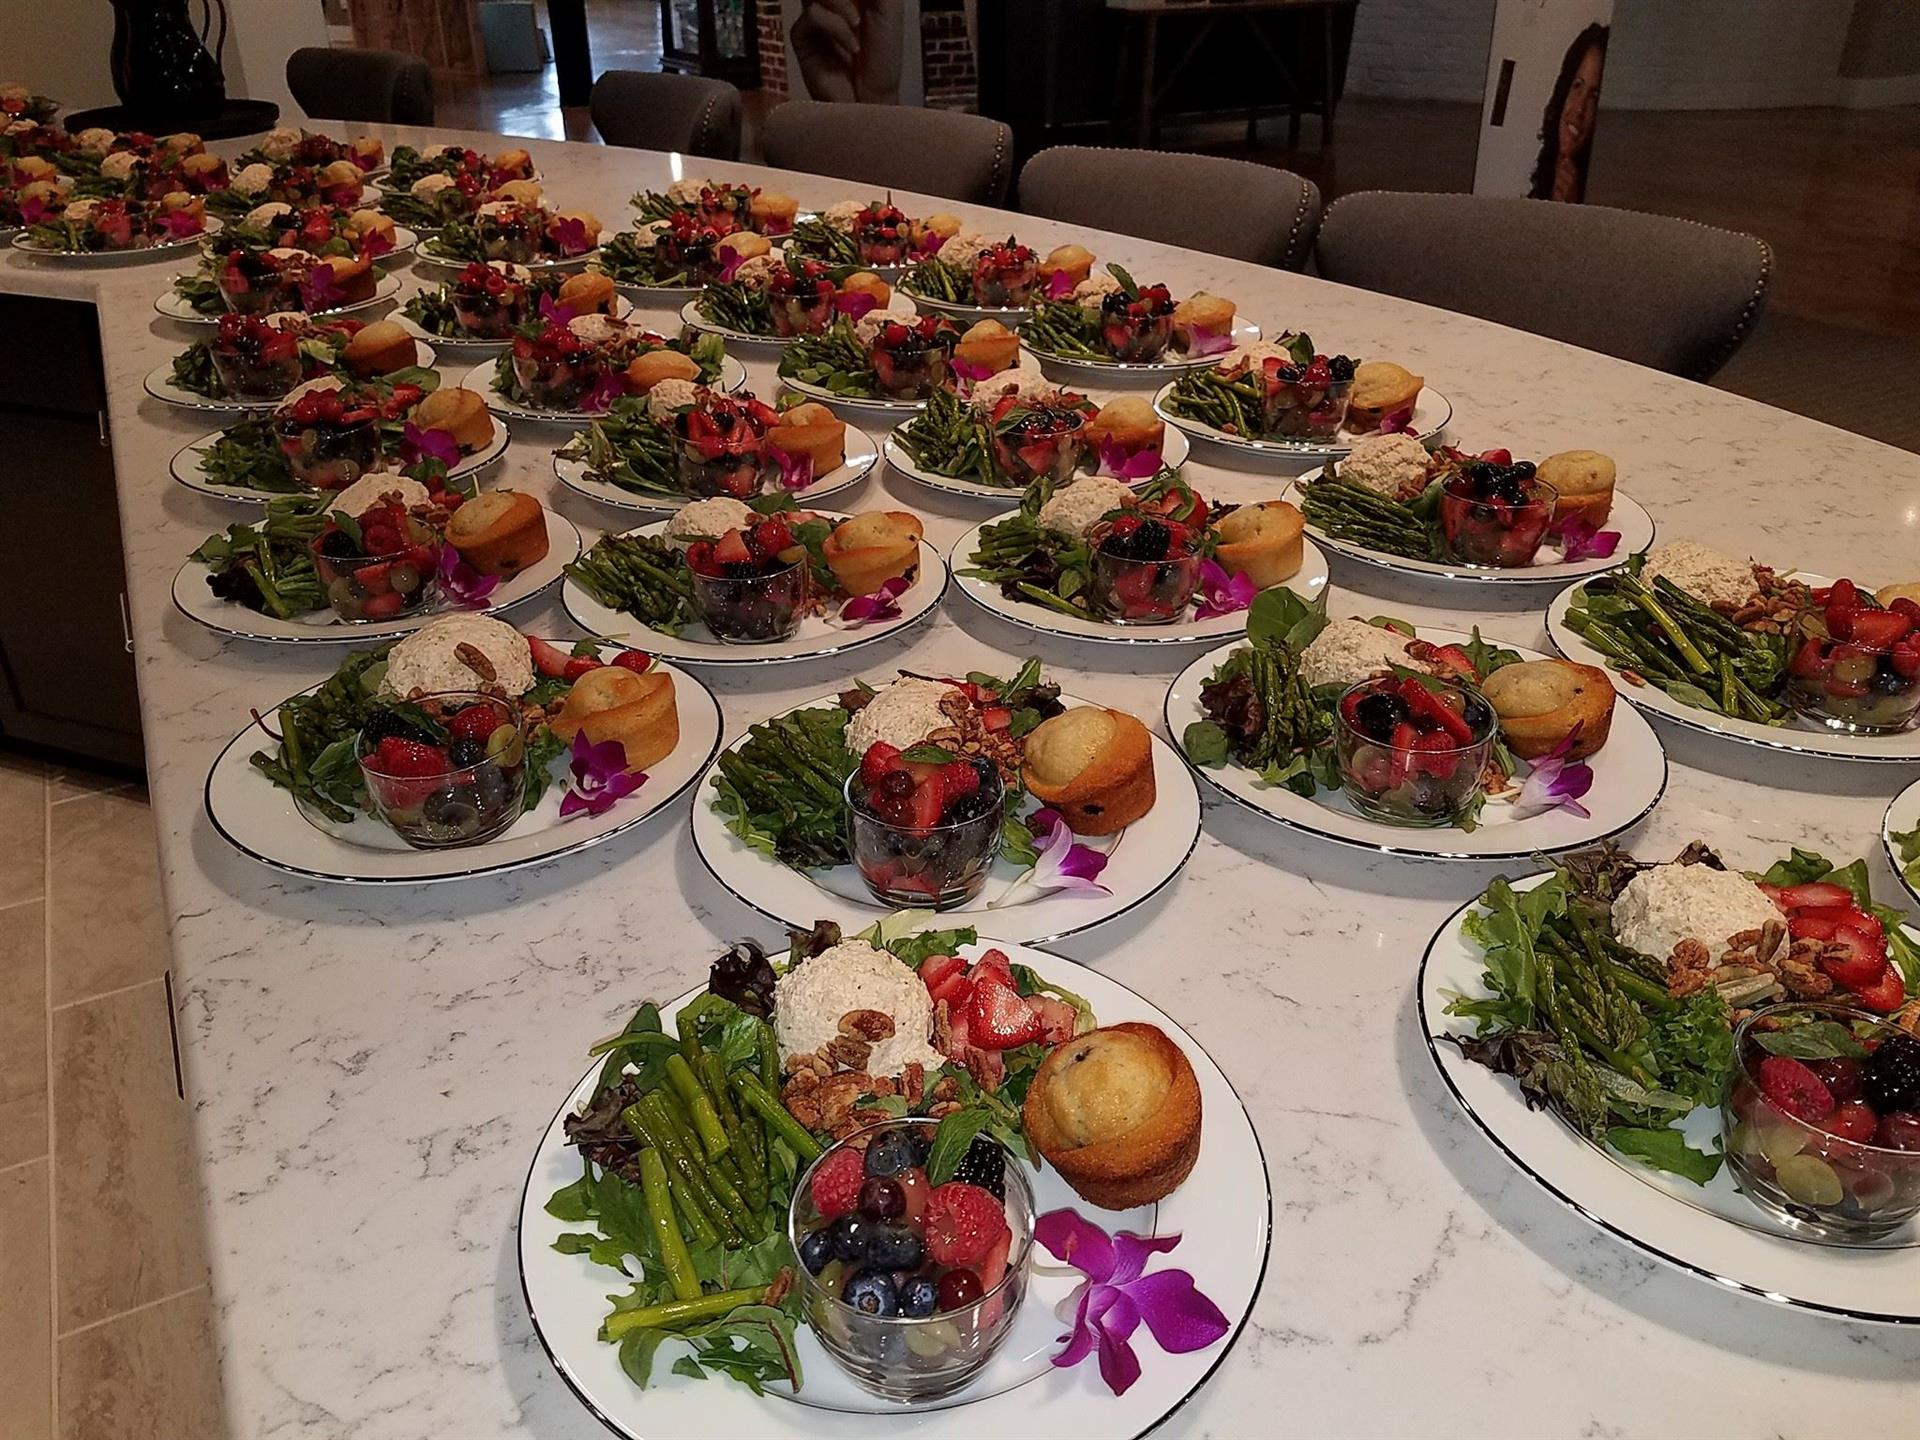 plates set with meals including grilled apsargus and mixed berry fruit cups